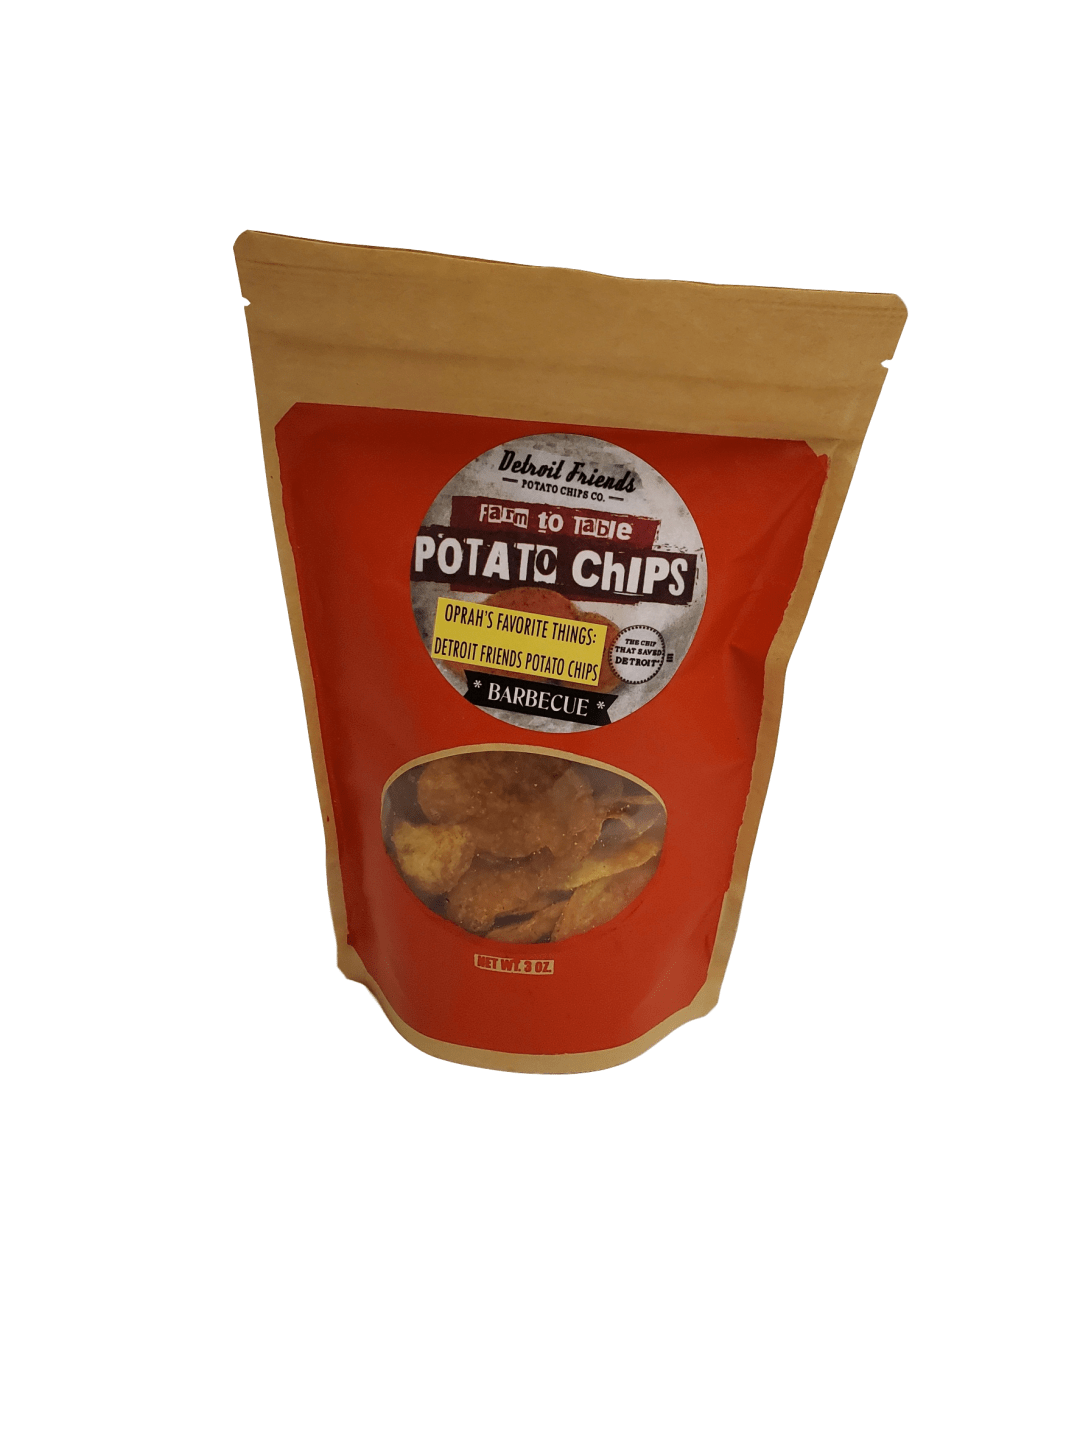 Detroit Friends Potato Chips - Barbeque - Pure Detroit